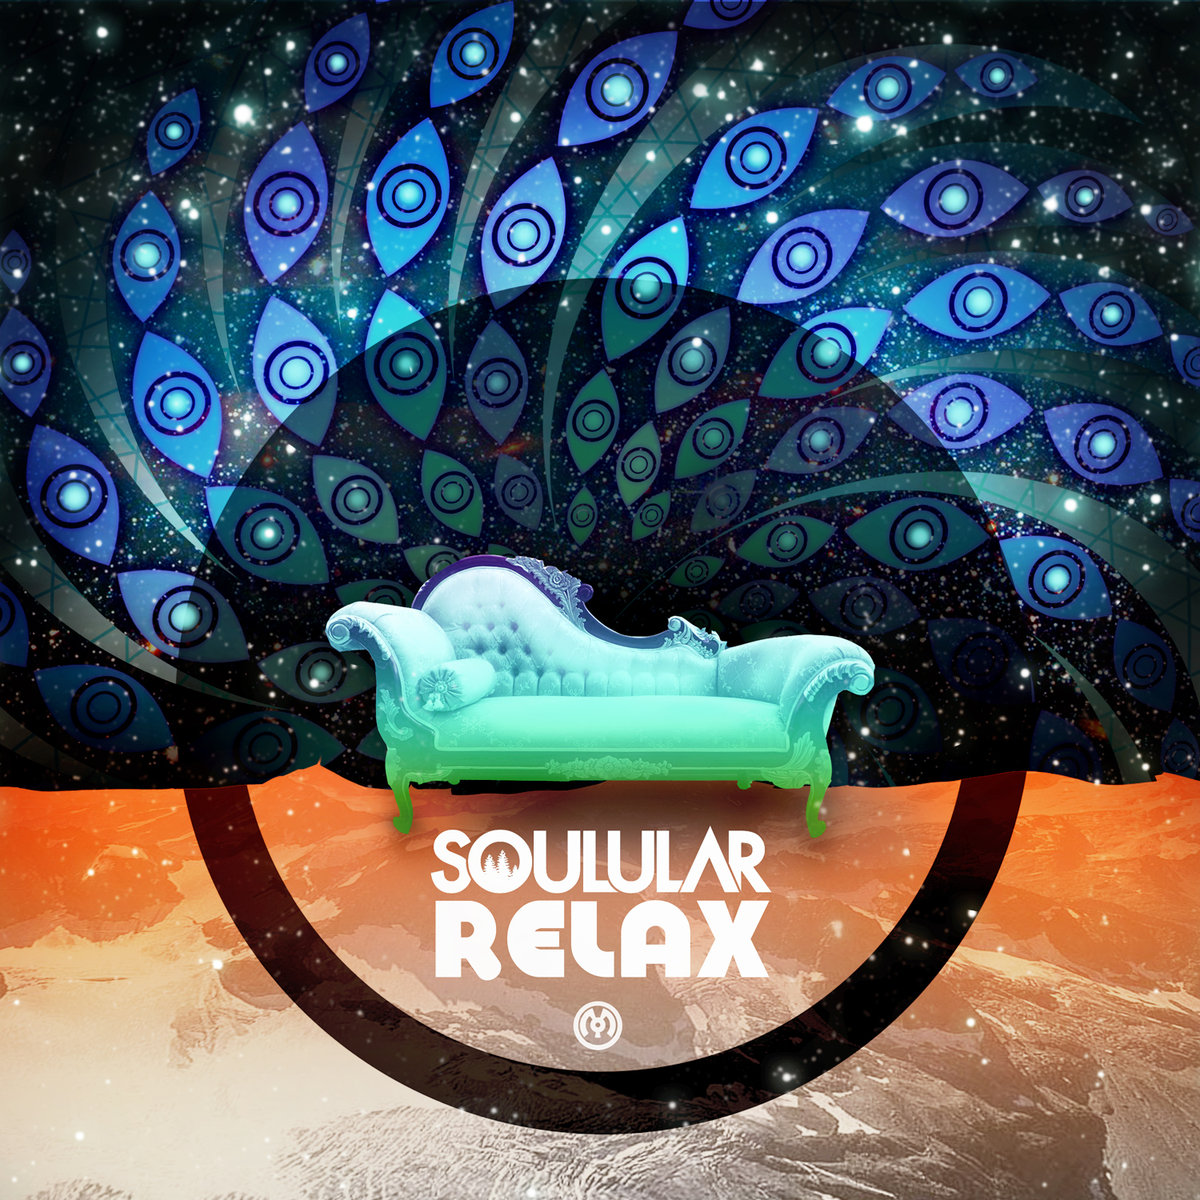 Soulular - Crystal Doors @ 'Relax' album (electronic, dubstep)